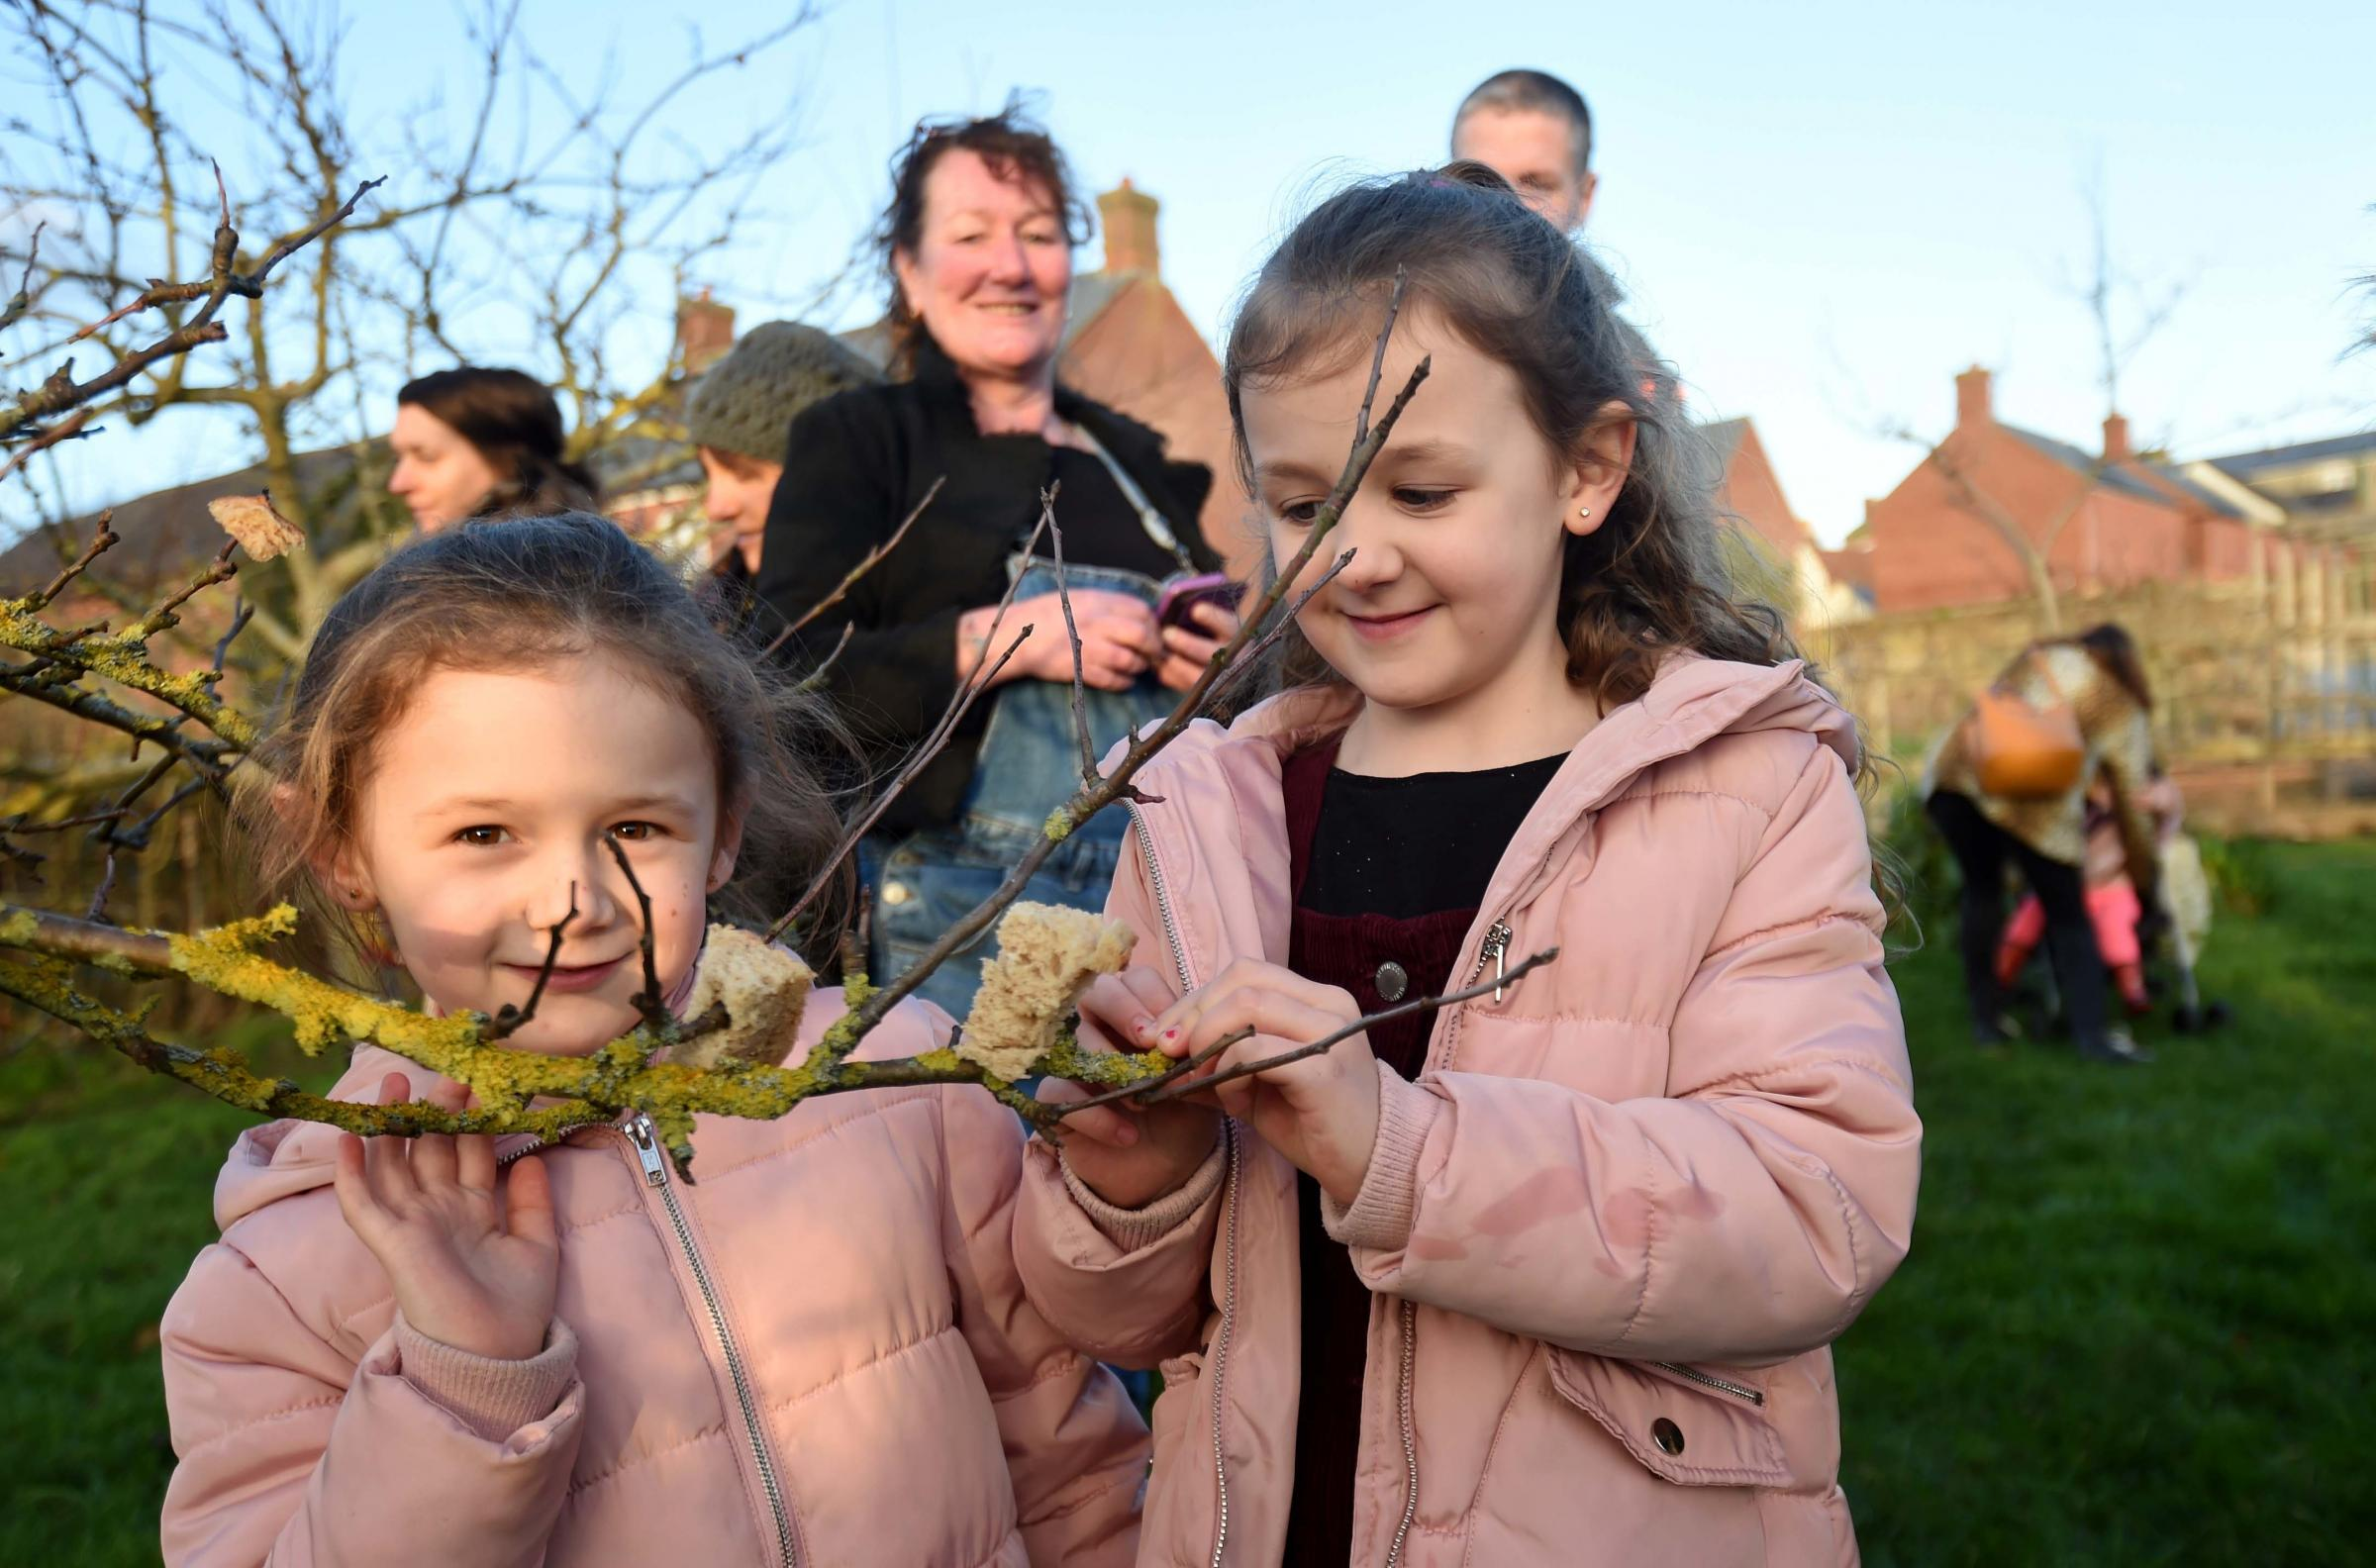 Bridport Community Orchard's Wassailing event huge success